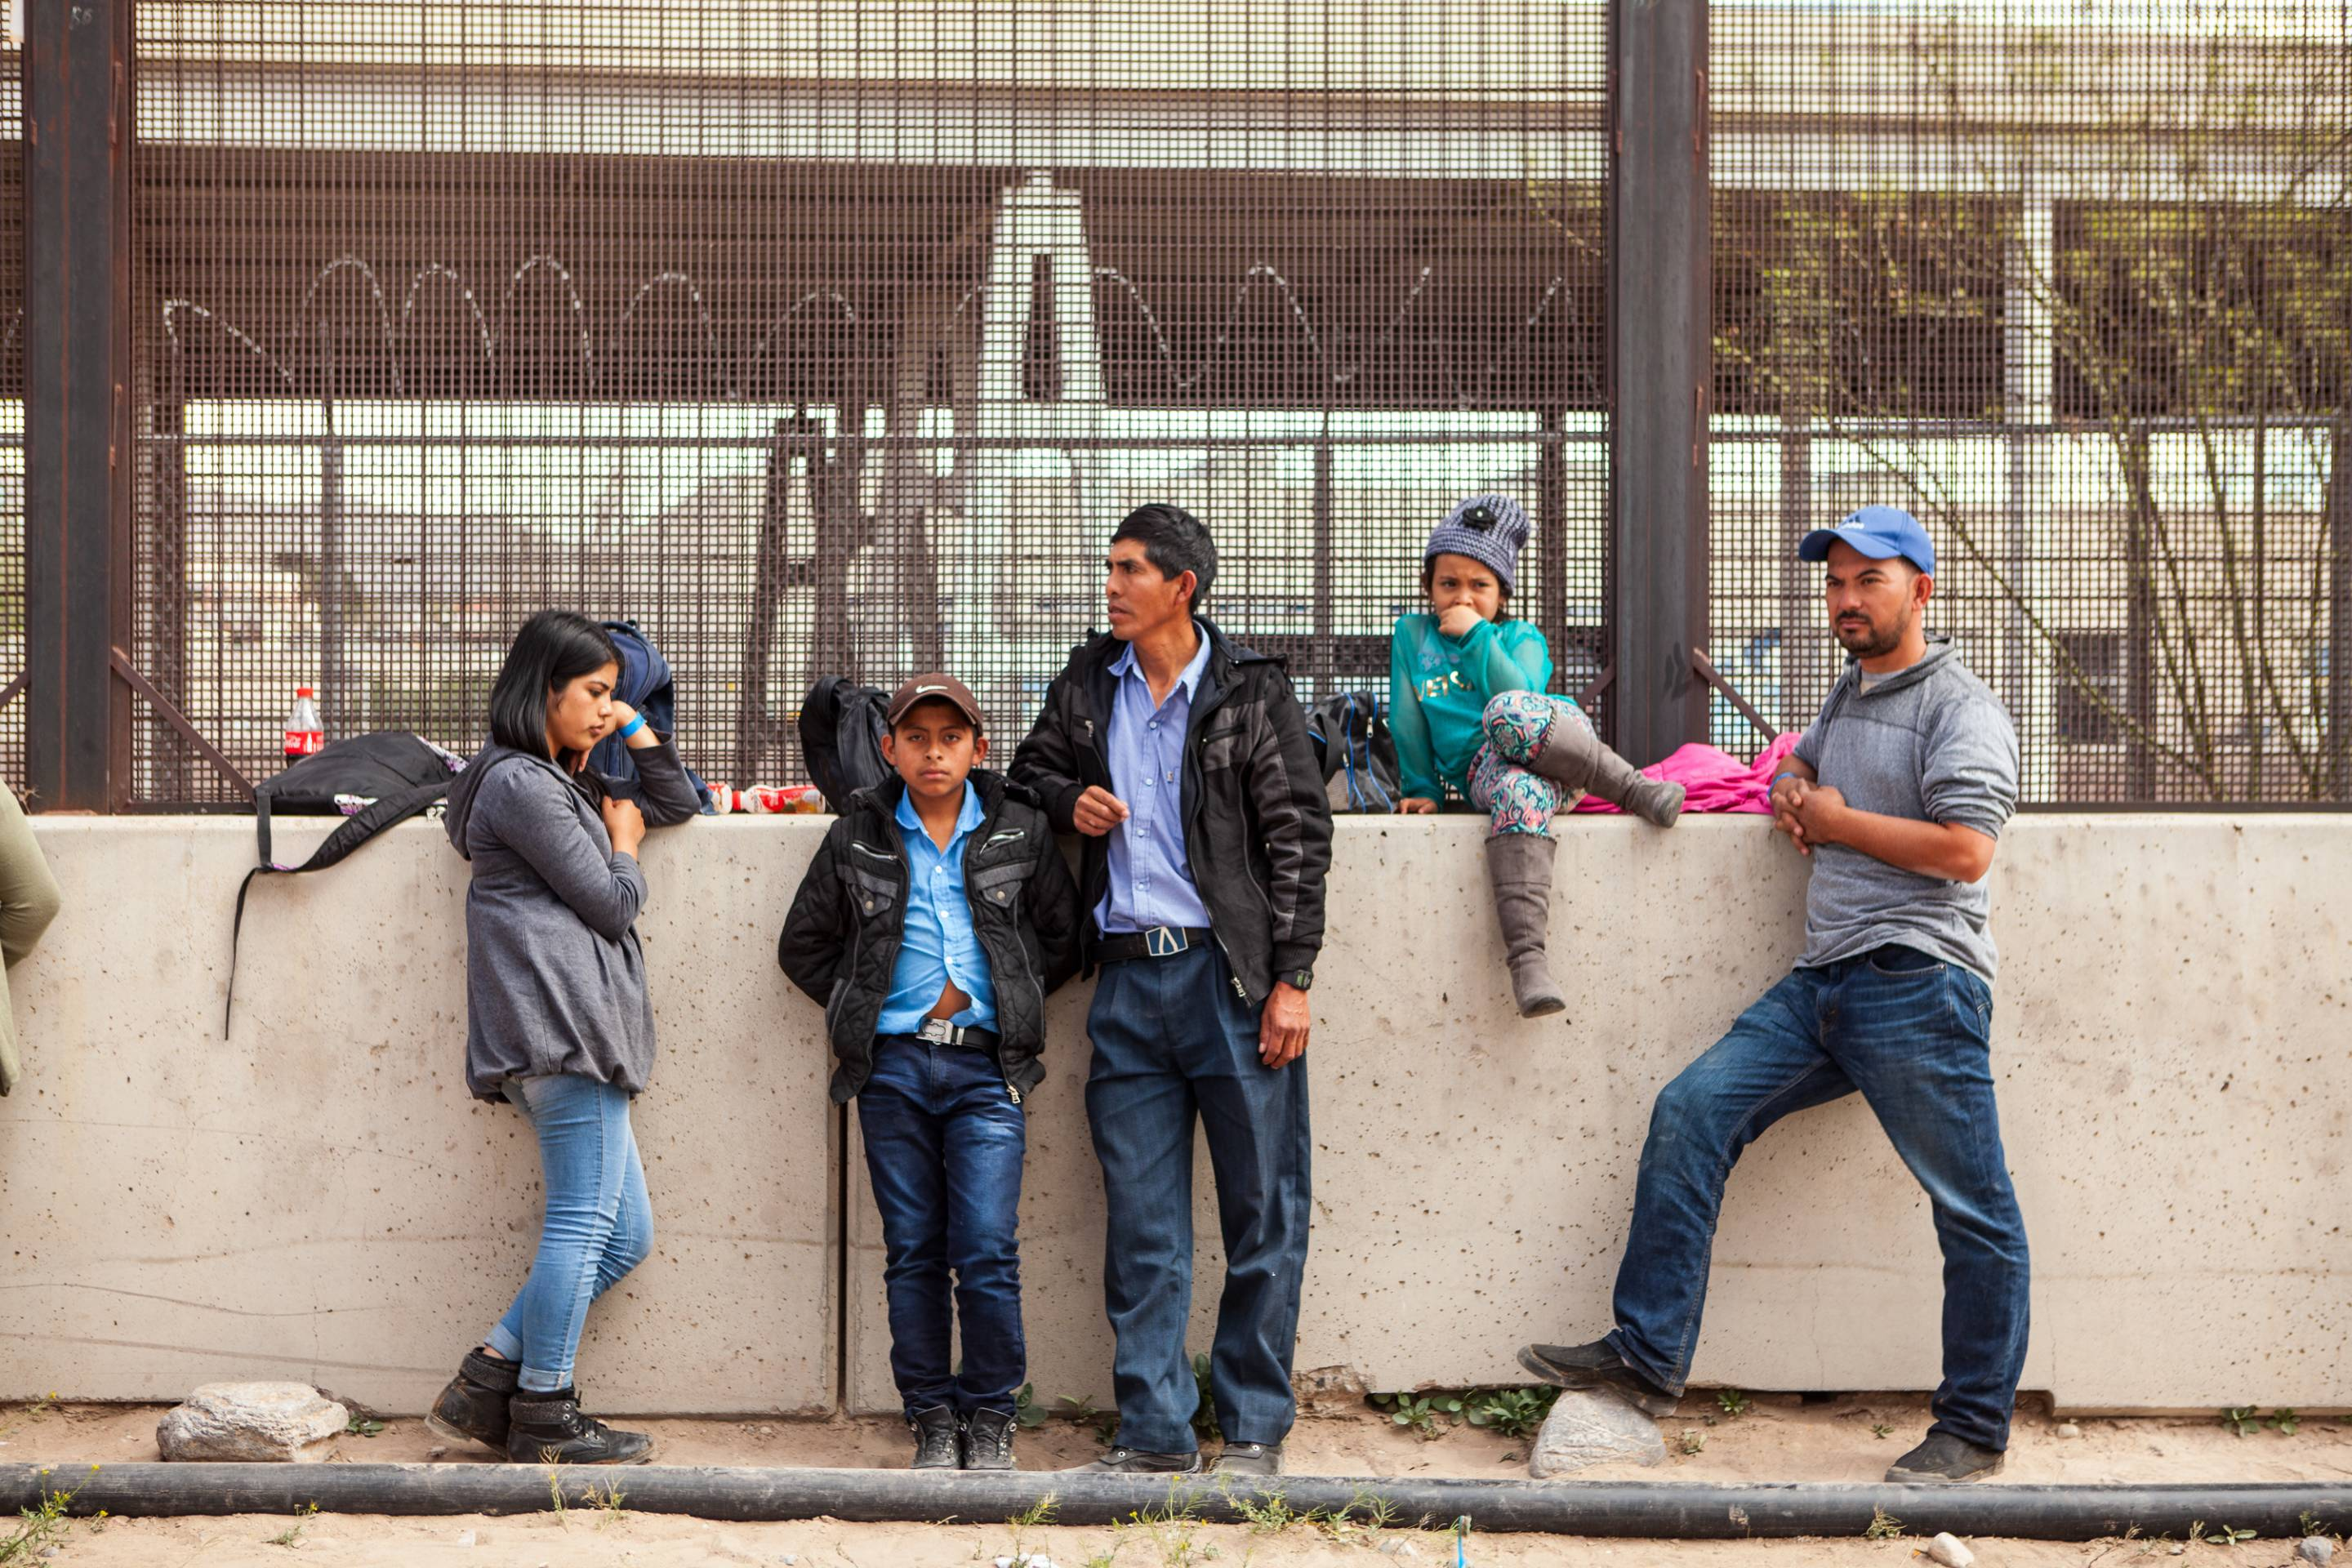 U.S. Customs And Border Protection Agency Holding Detained Migrants Under Bridge In El Paso